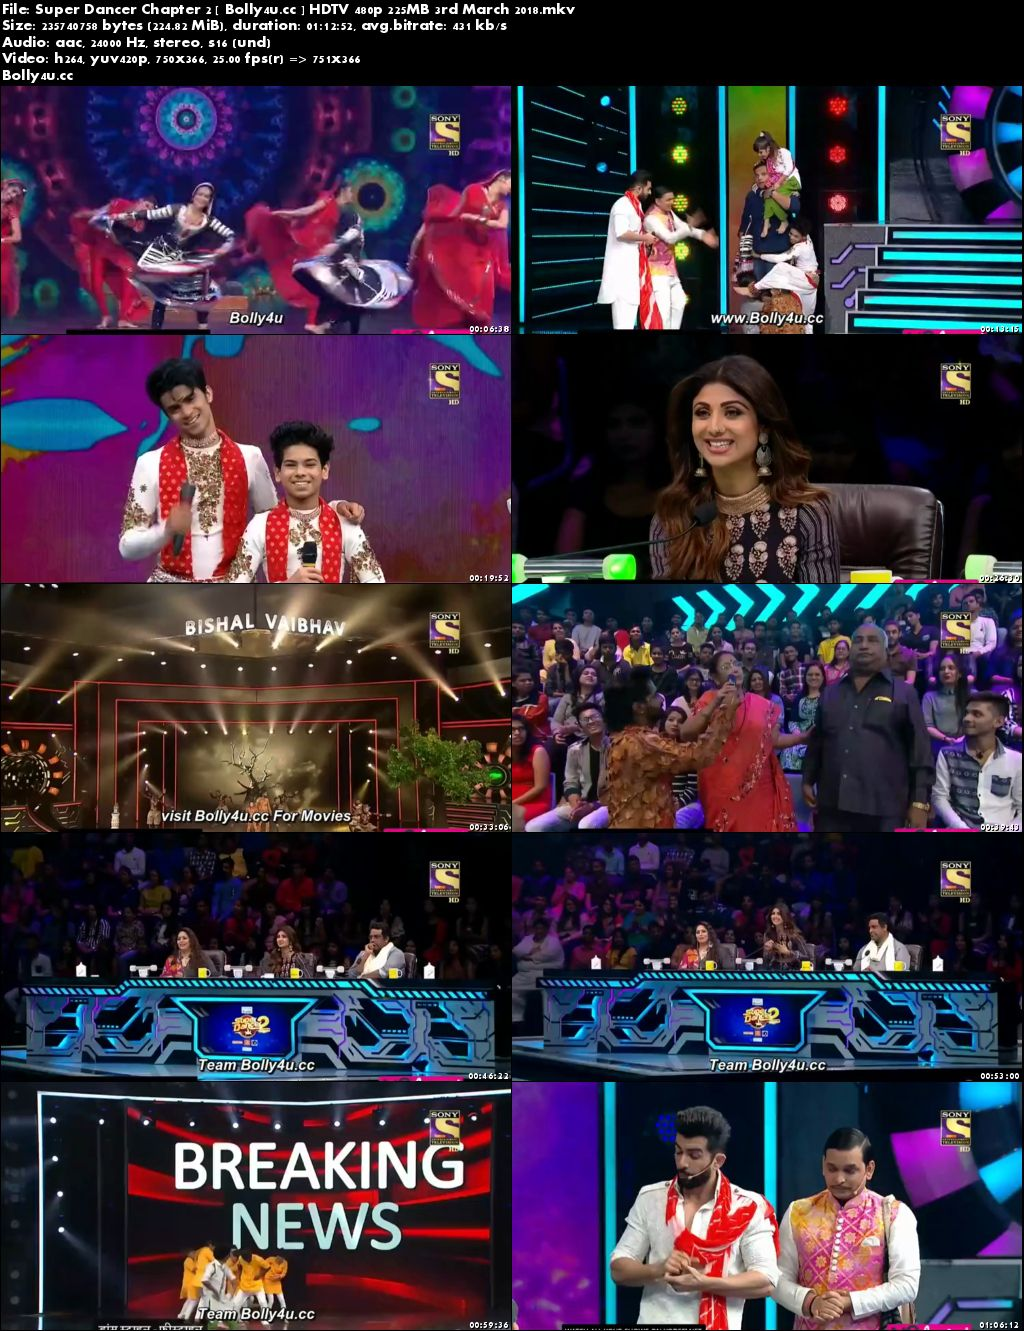 Super Dancer Chapter 2 HDTV 480p 200MB 03 March 2018 Download